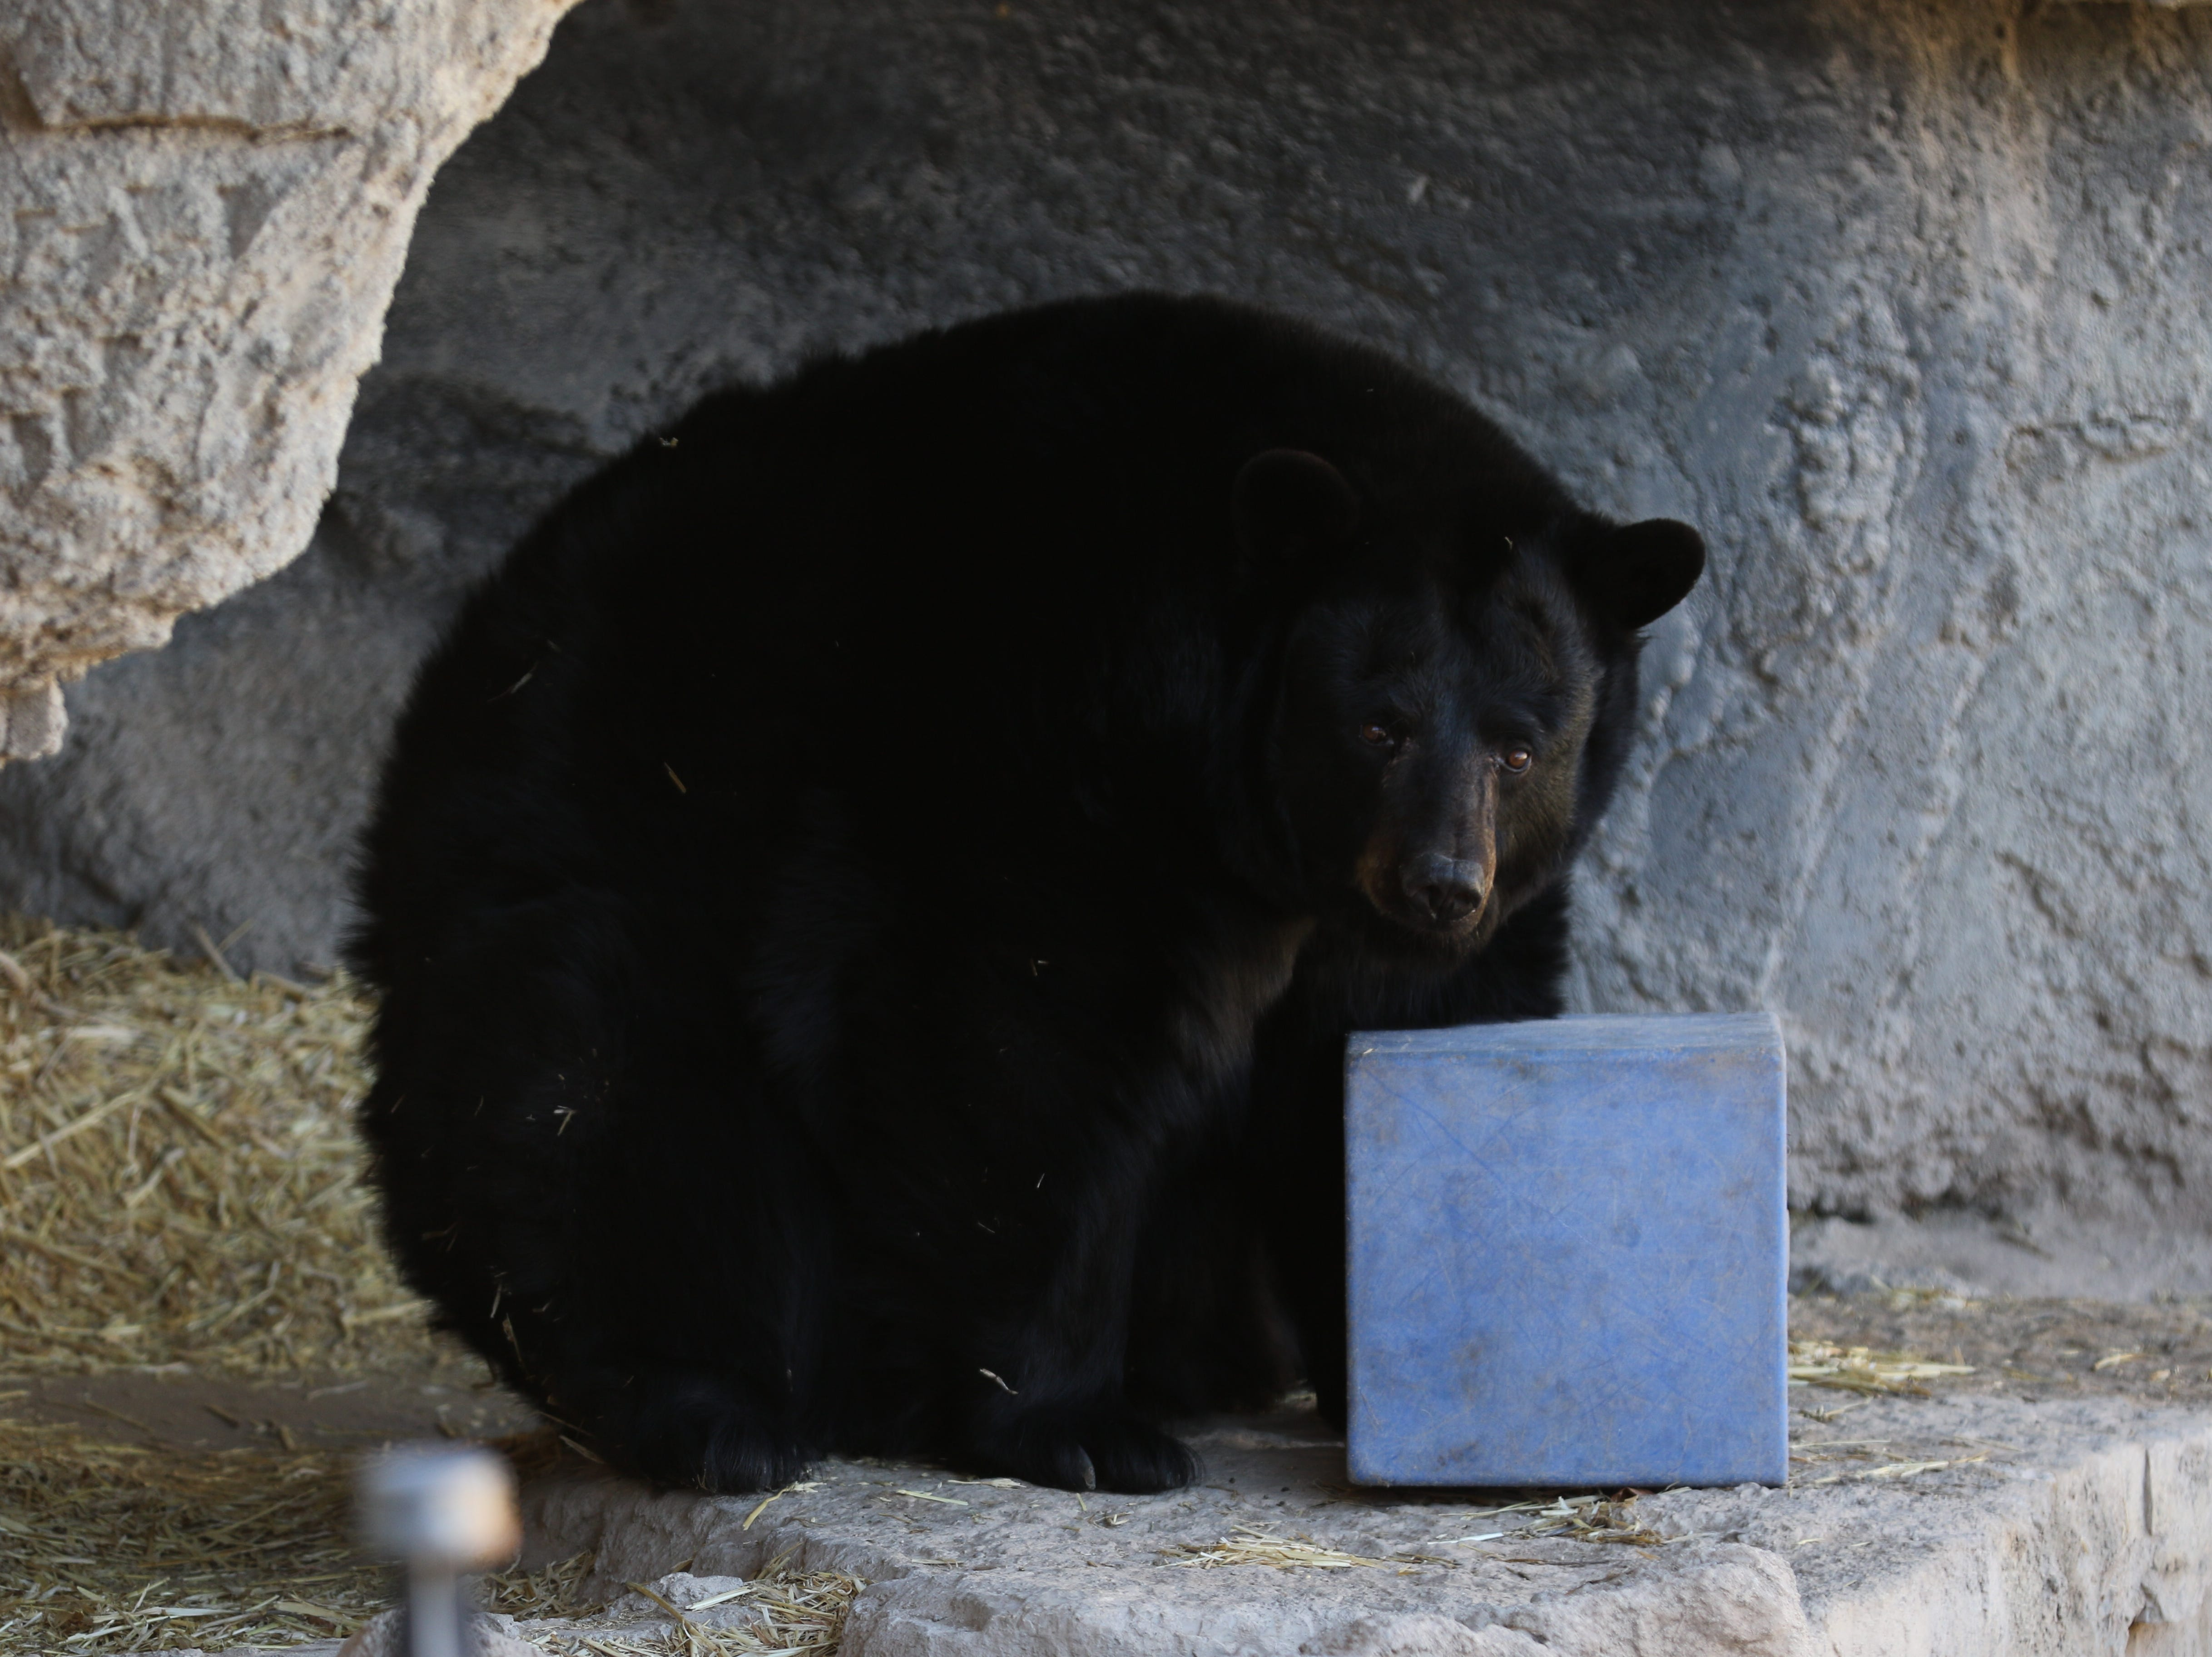 Maggie the bear enjoy's her 14th birthday, Jan. 19, 2018 at the Living Desert Zoo and Gardens State Park.